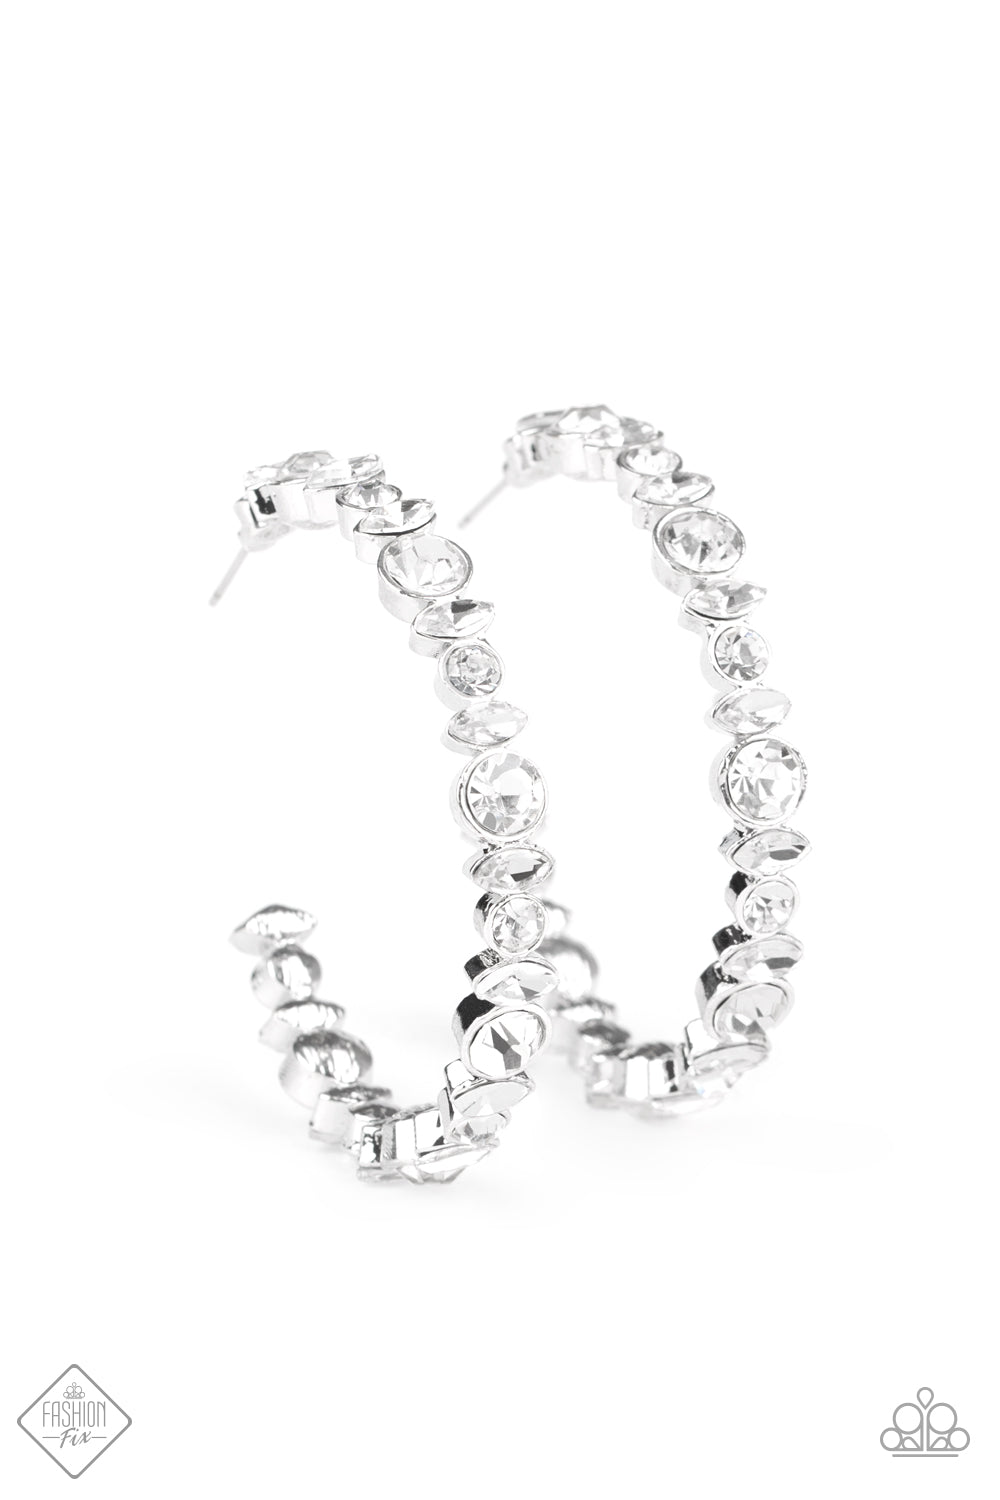 Paparazzi Earring Fashion Fix Sept 2020 ~ Can I Have Your Attention? - White